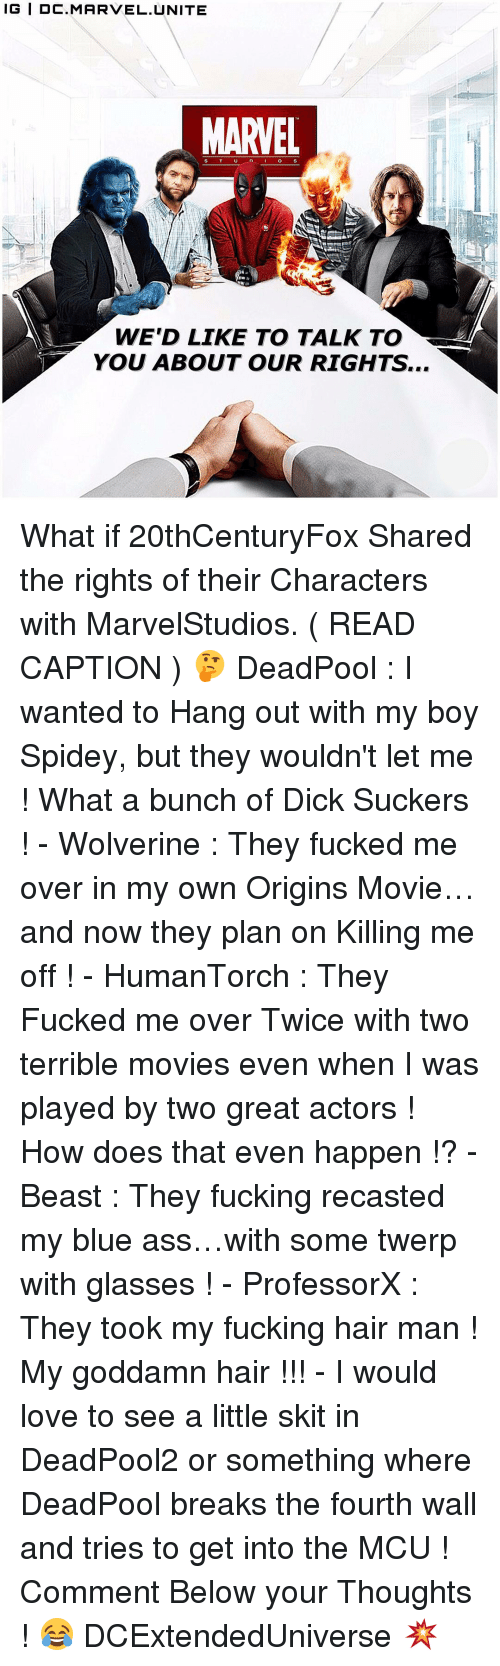 fourth wall: IG IDC. MARVEL UNITE  MARVEL  WE'D LIKE TO TALK TO  YOU ABOUT OUR RIGHTS... What if 20thCenturyFox Shared the rights of their Characters with MarvelStudios. ( READ CAPTION ) 🤔 DeadPool : I wanted to Hang out with my boy Spidey, but they wouldn't let me ! What a bunch of Dick Suckers ! - Wolverine : They fucked me over in my own Origins Movie…and now they plan on Killing me off ! - HumanTorch : They Fucked me over Twice with two terrible movies even when I was played by two great actors ! How does that even happen !? - Beast : They fucking recasted my blue ass…with some twerp with glasses ! - ProfessorX : They took my fucking hair man ! My goddamn hair !!! - I would love to see a little skit in DeadPool2 or something where DeadPool breaks the fourth wall and tries to get into the MCU ! Comment Below your Thoughts ! 😂 DCExtendedUniverse 💥